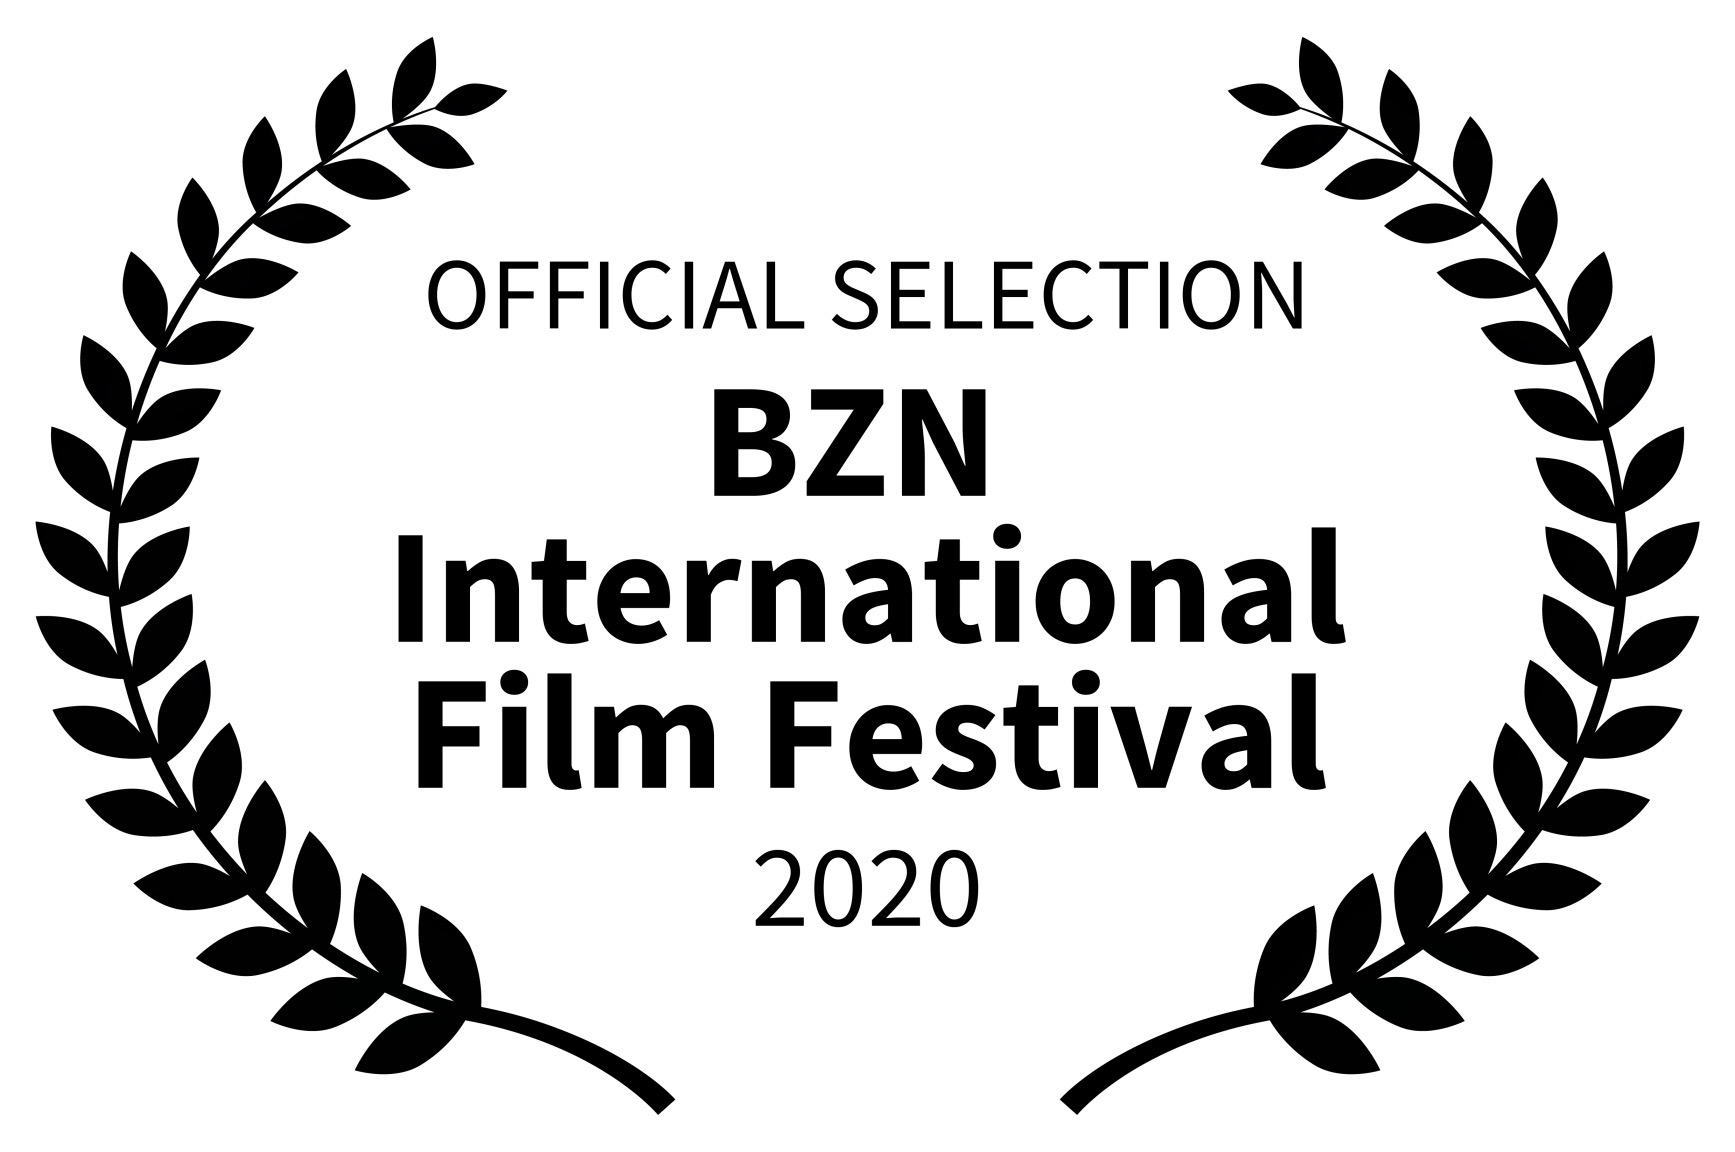 OFFICIAL SELECTION - BZN  International